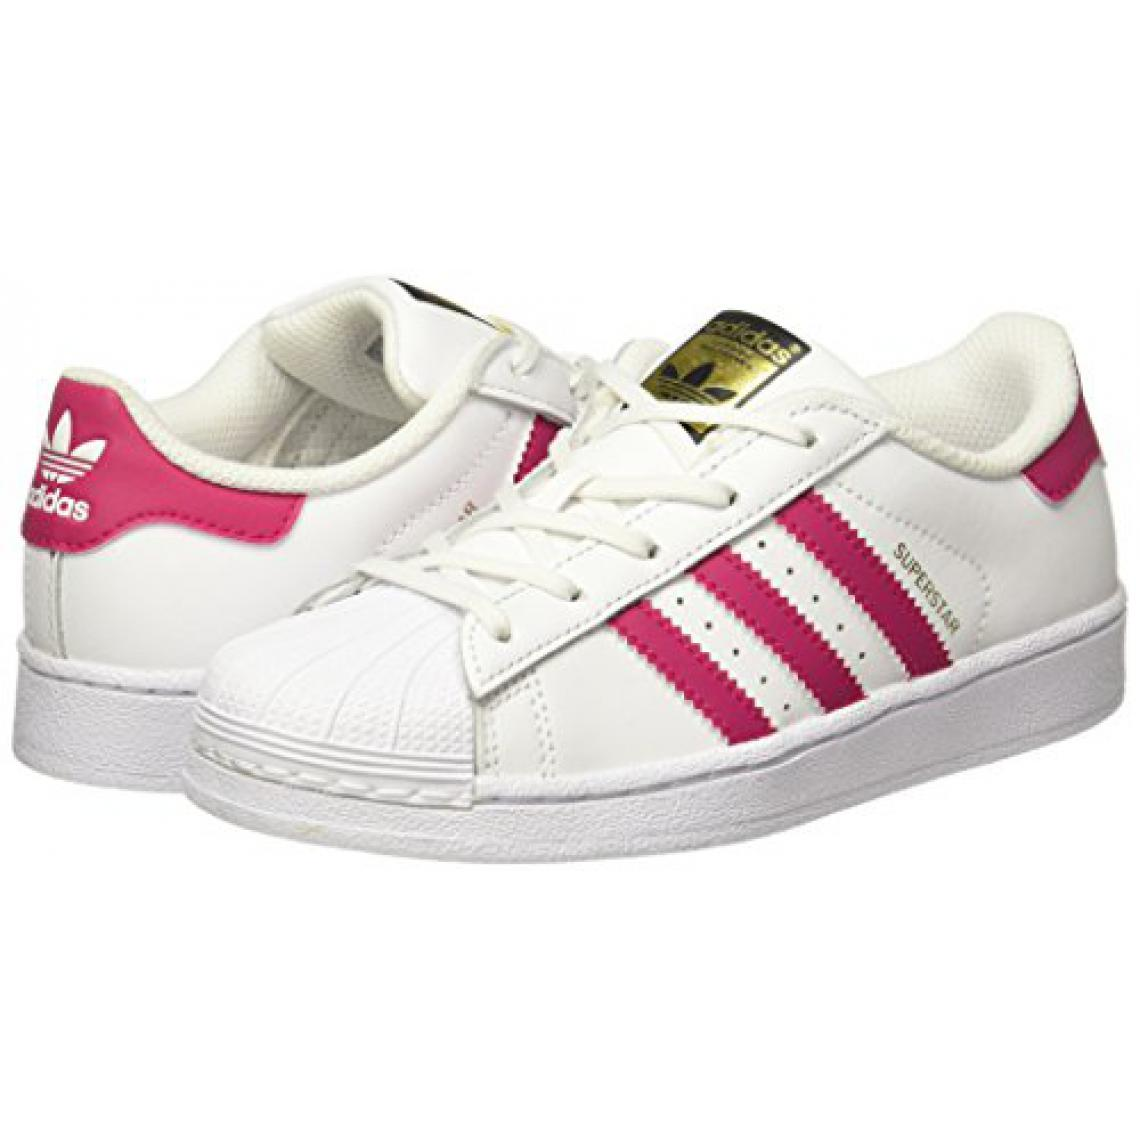 Baskets Superstar Adidas Originals fille